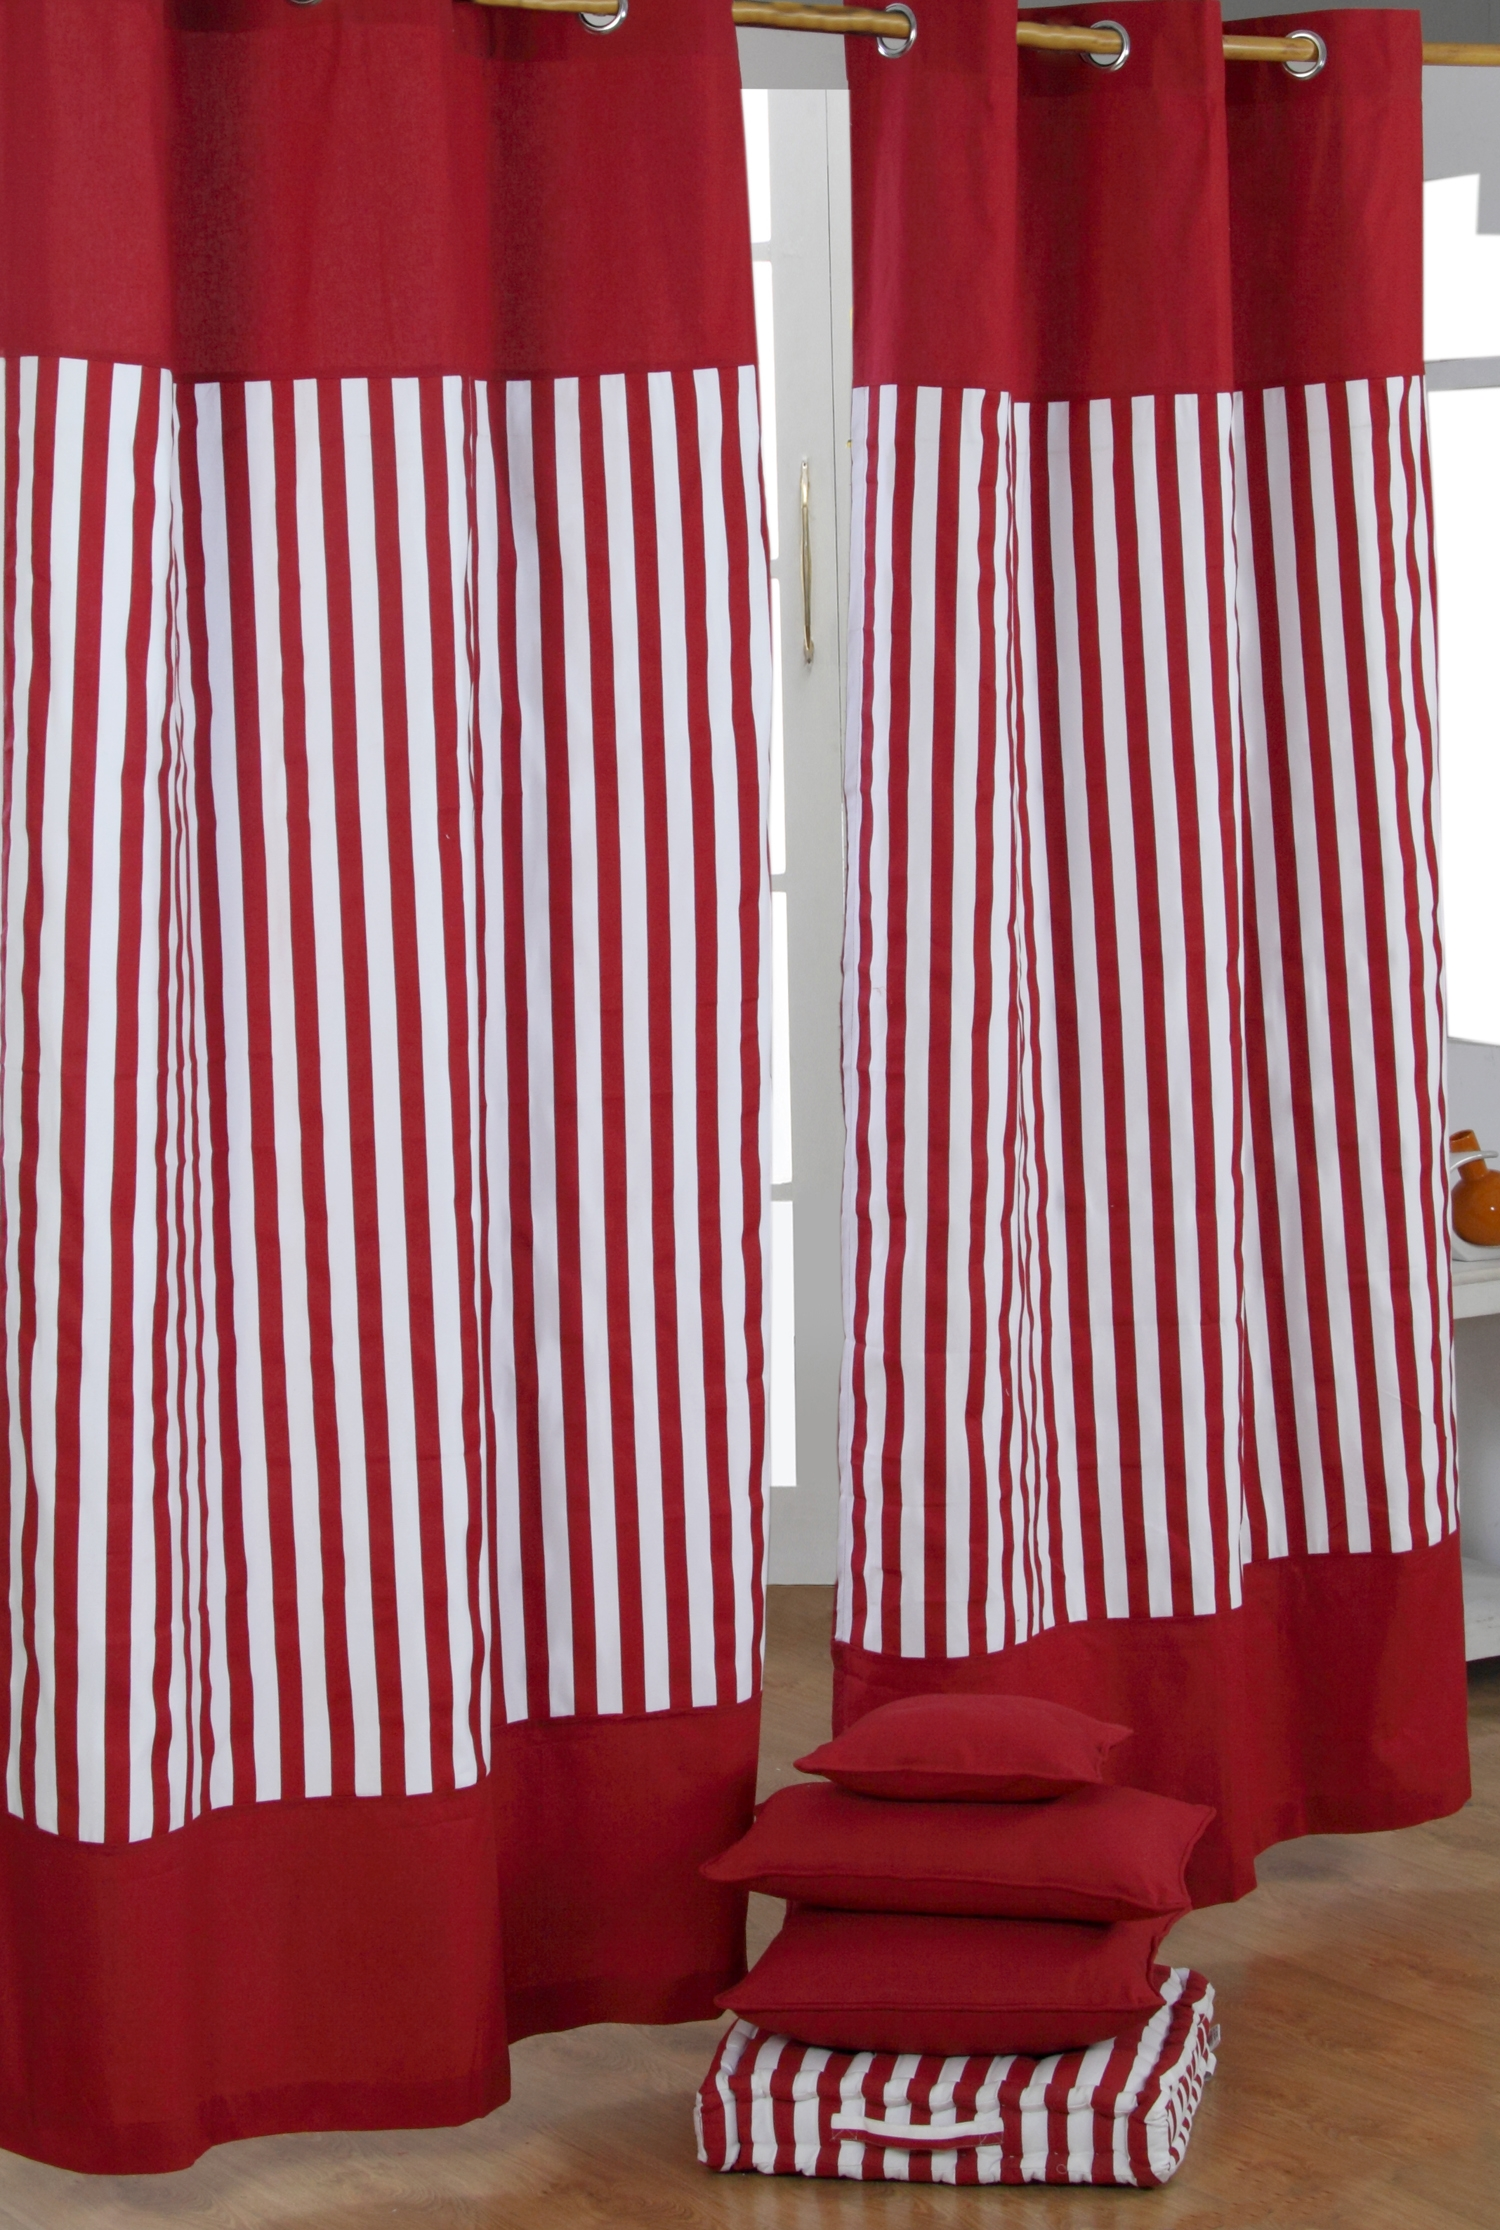 Garage Shed Contemporary Window Shade With Horizontal Striped Throughout Stripe Curtains (Image 14 of 25)